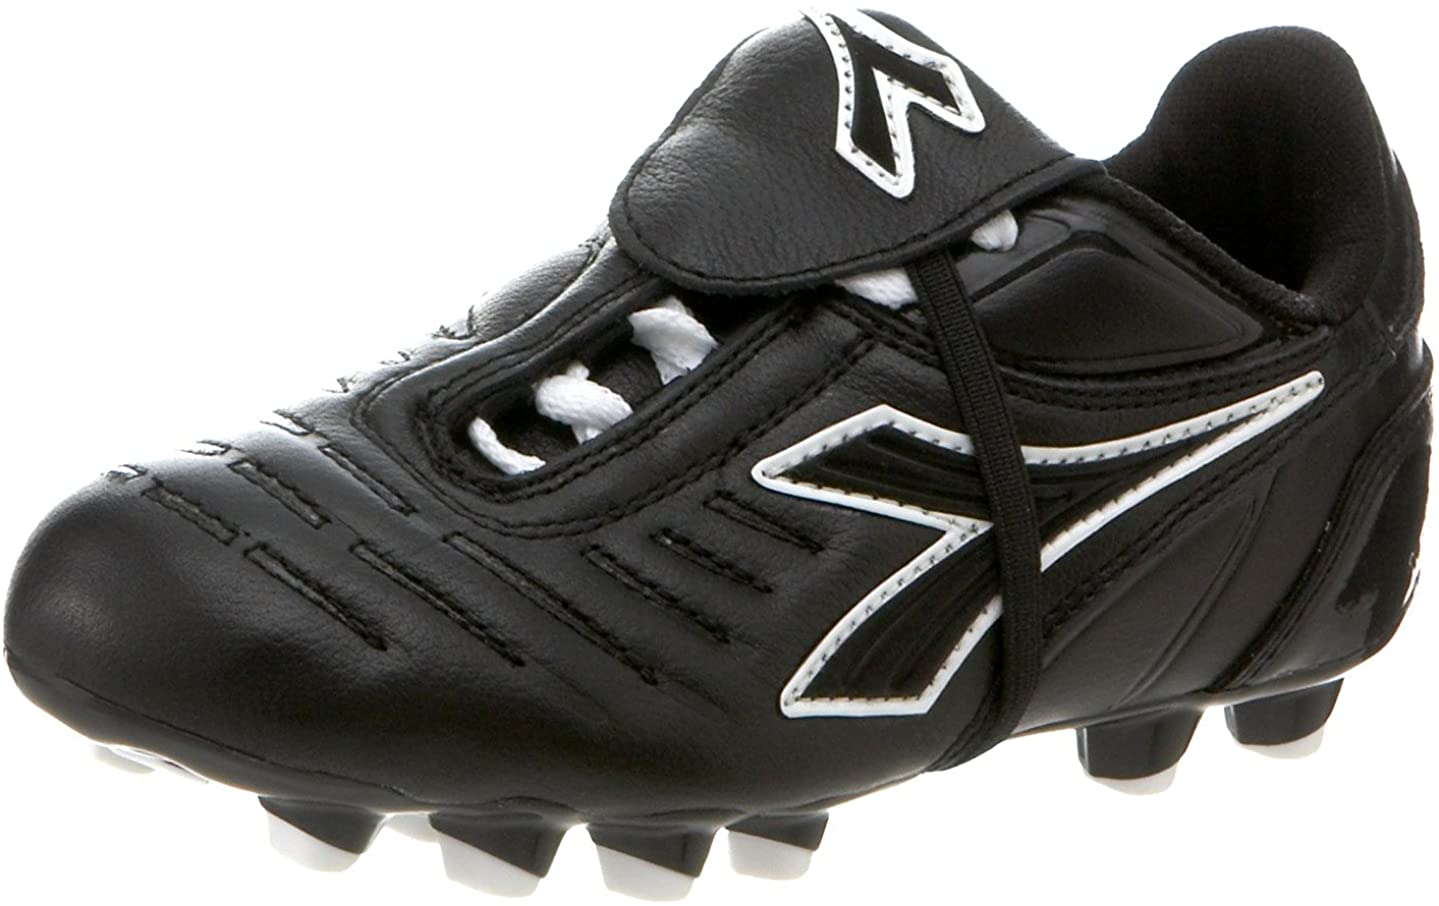 Diadora Maracana MD Soccer Shoe (Little Kid/Big Kid)